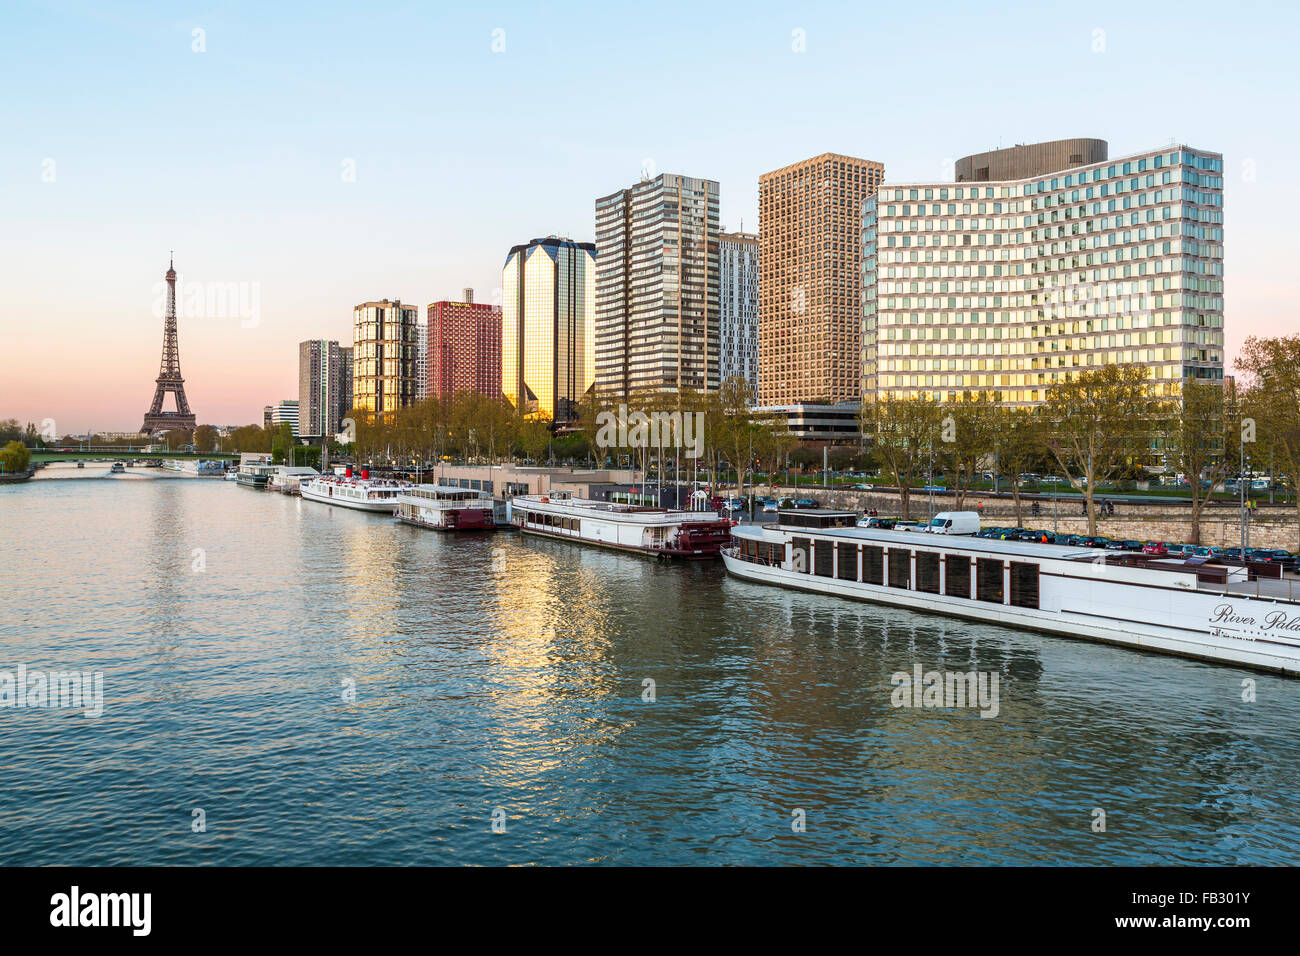 Evening view of River Seine with high-rise buildings on the Left Bank, and Eiffel Tower, Paris, France, Europe - Stock Image